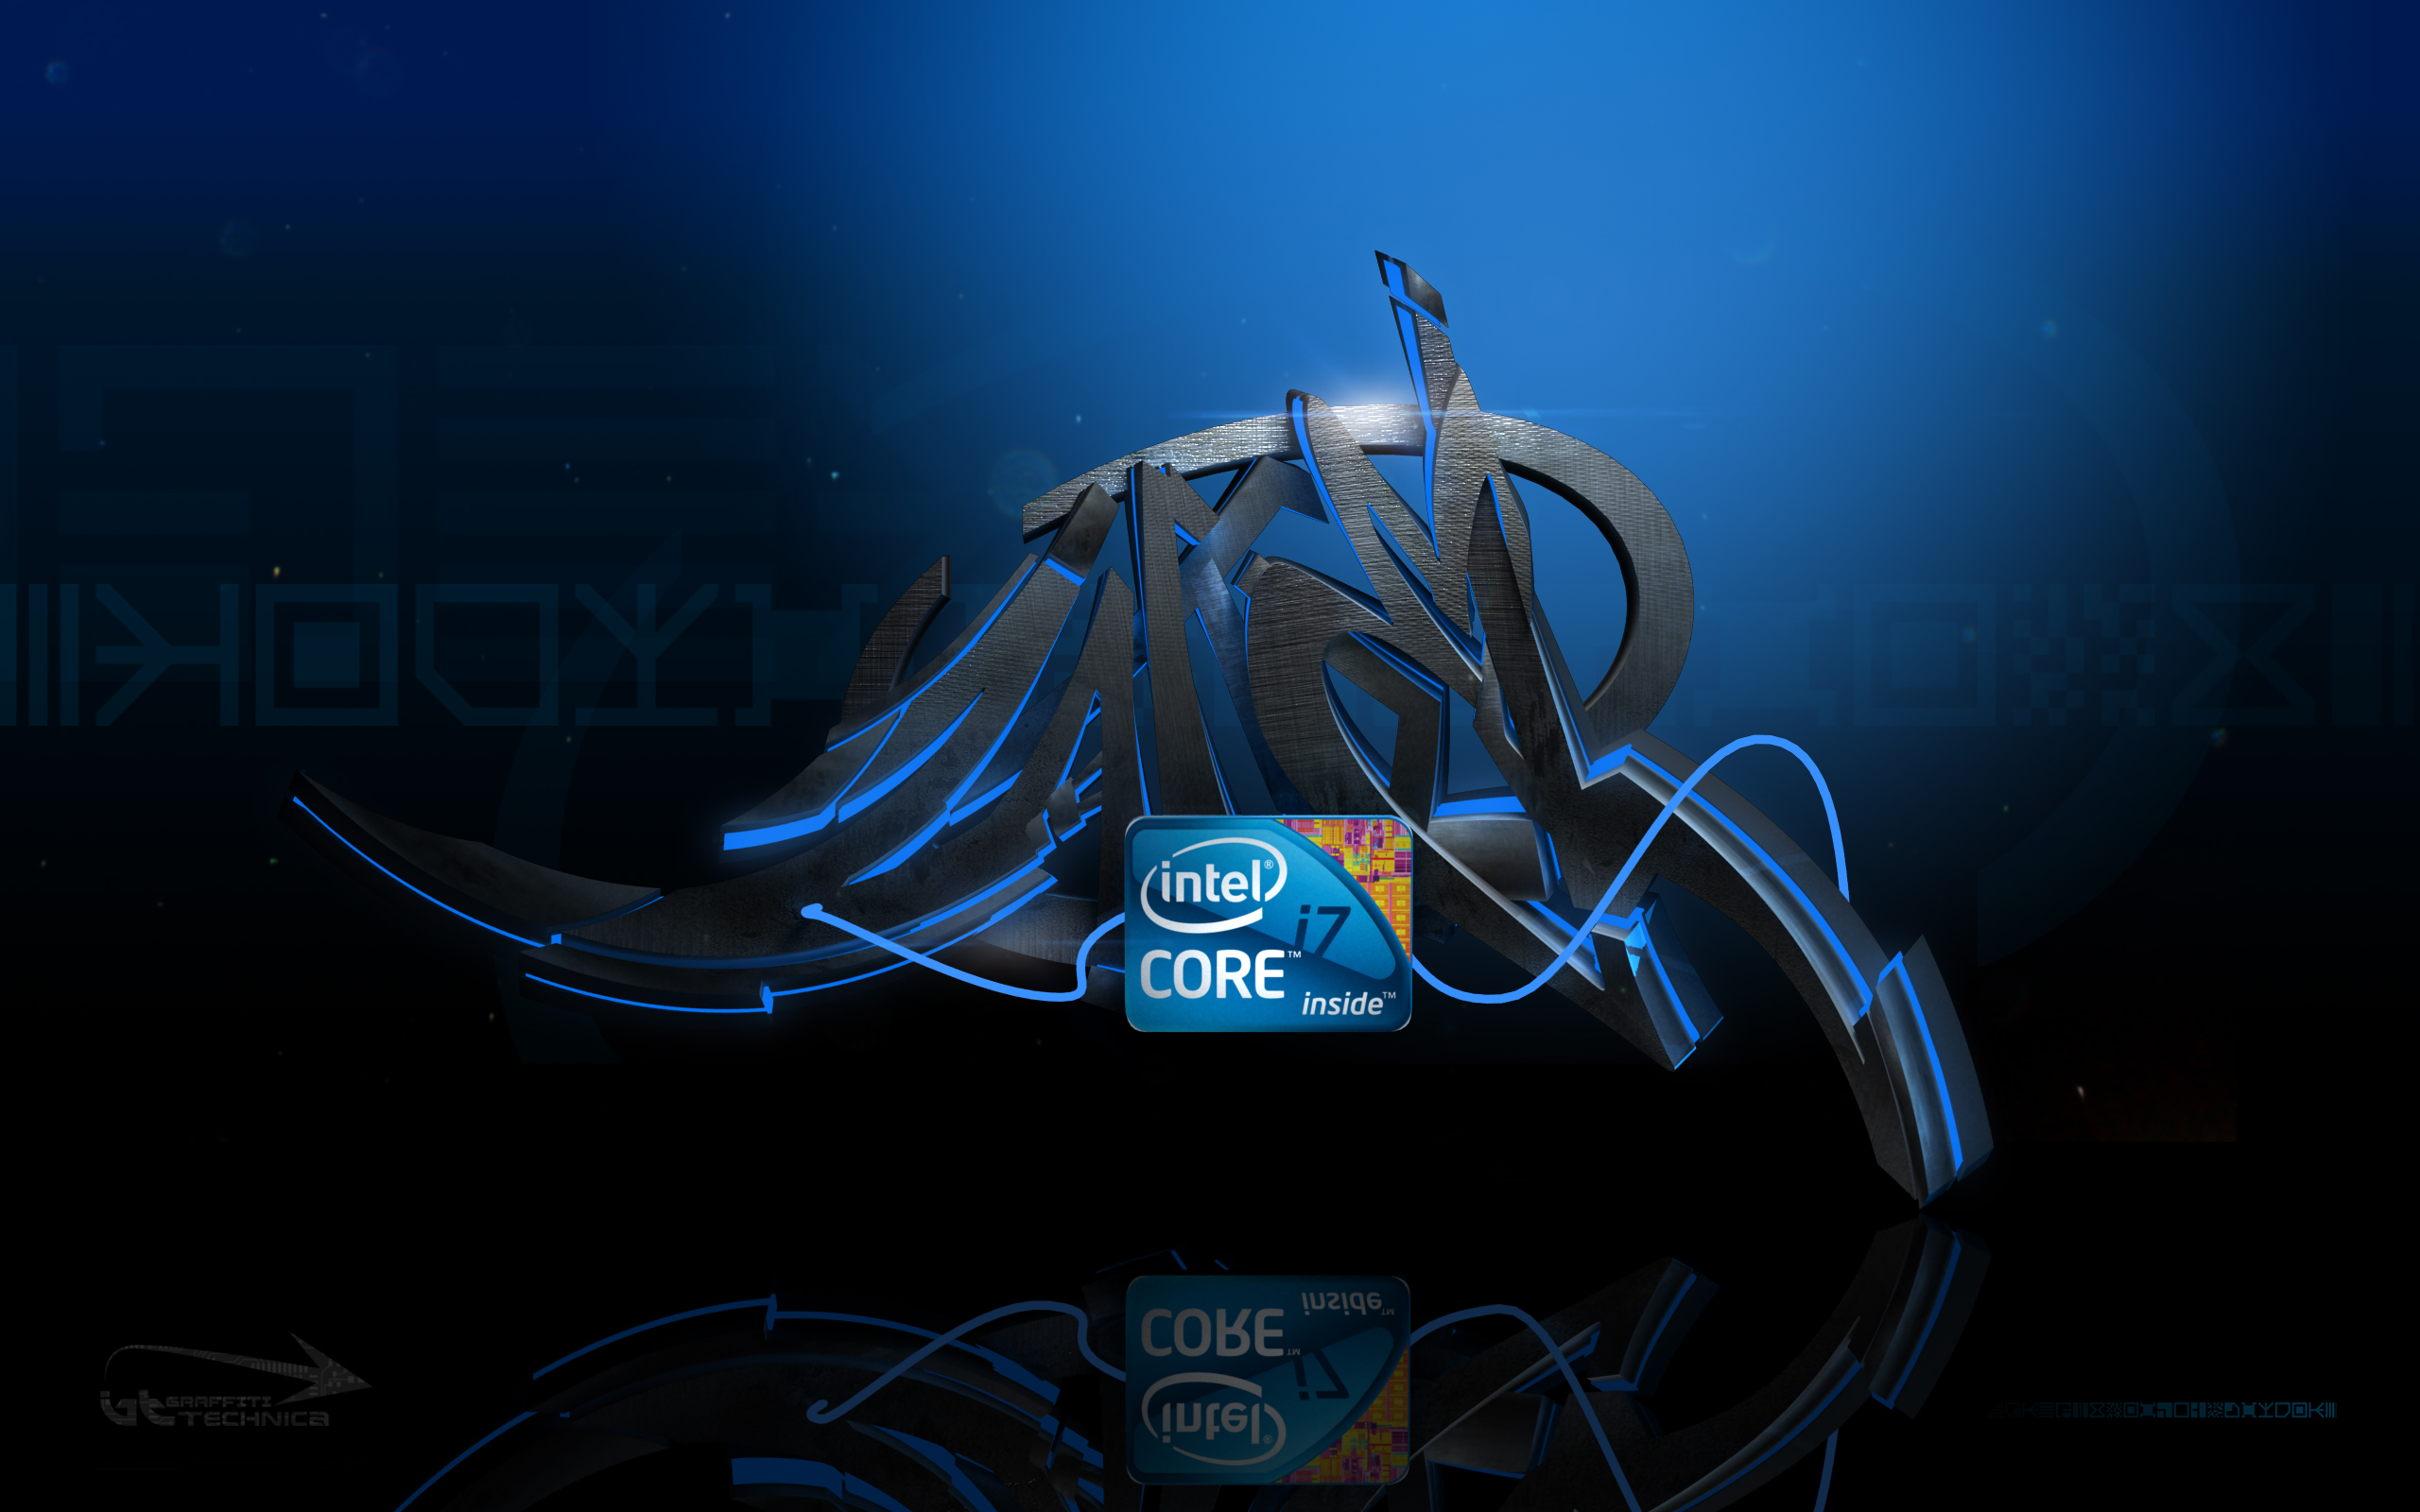 Intel HD Wallpapers, Intel Computer Wallpapers, High Definition intel 426